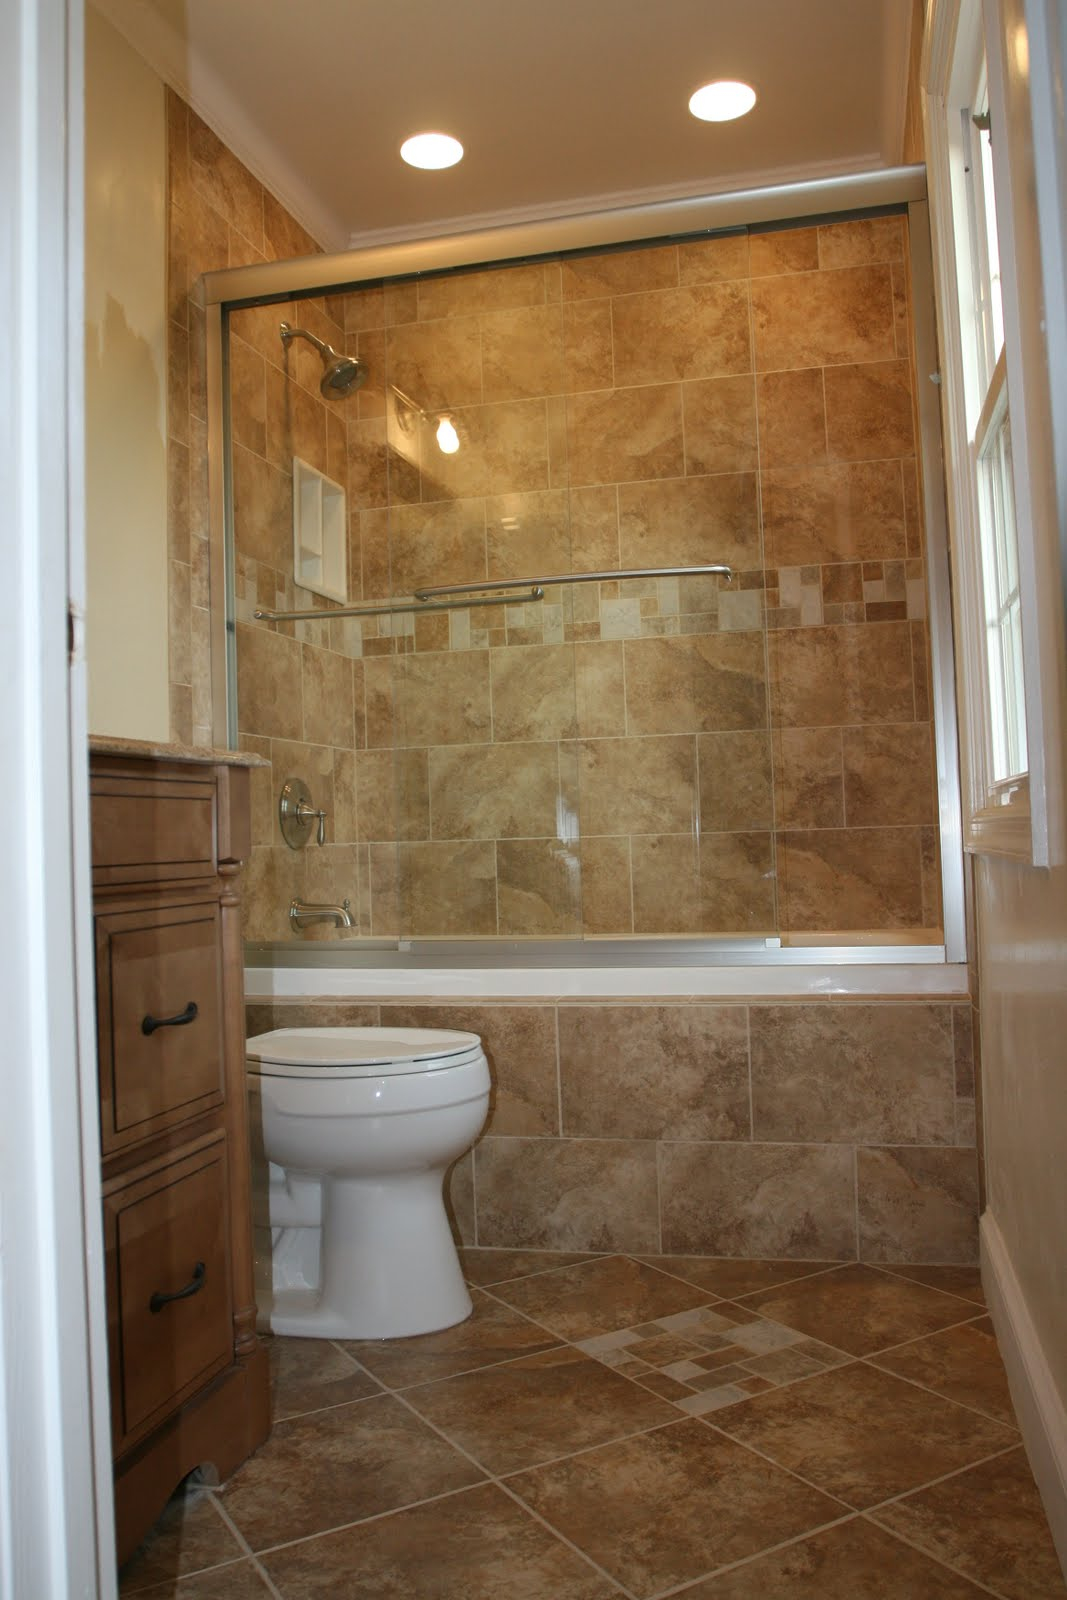 Bathroom remodeling design ideas tile shower niches for Bathroom improvements